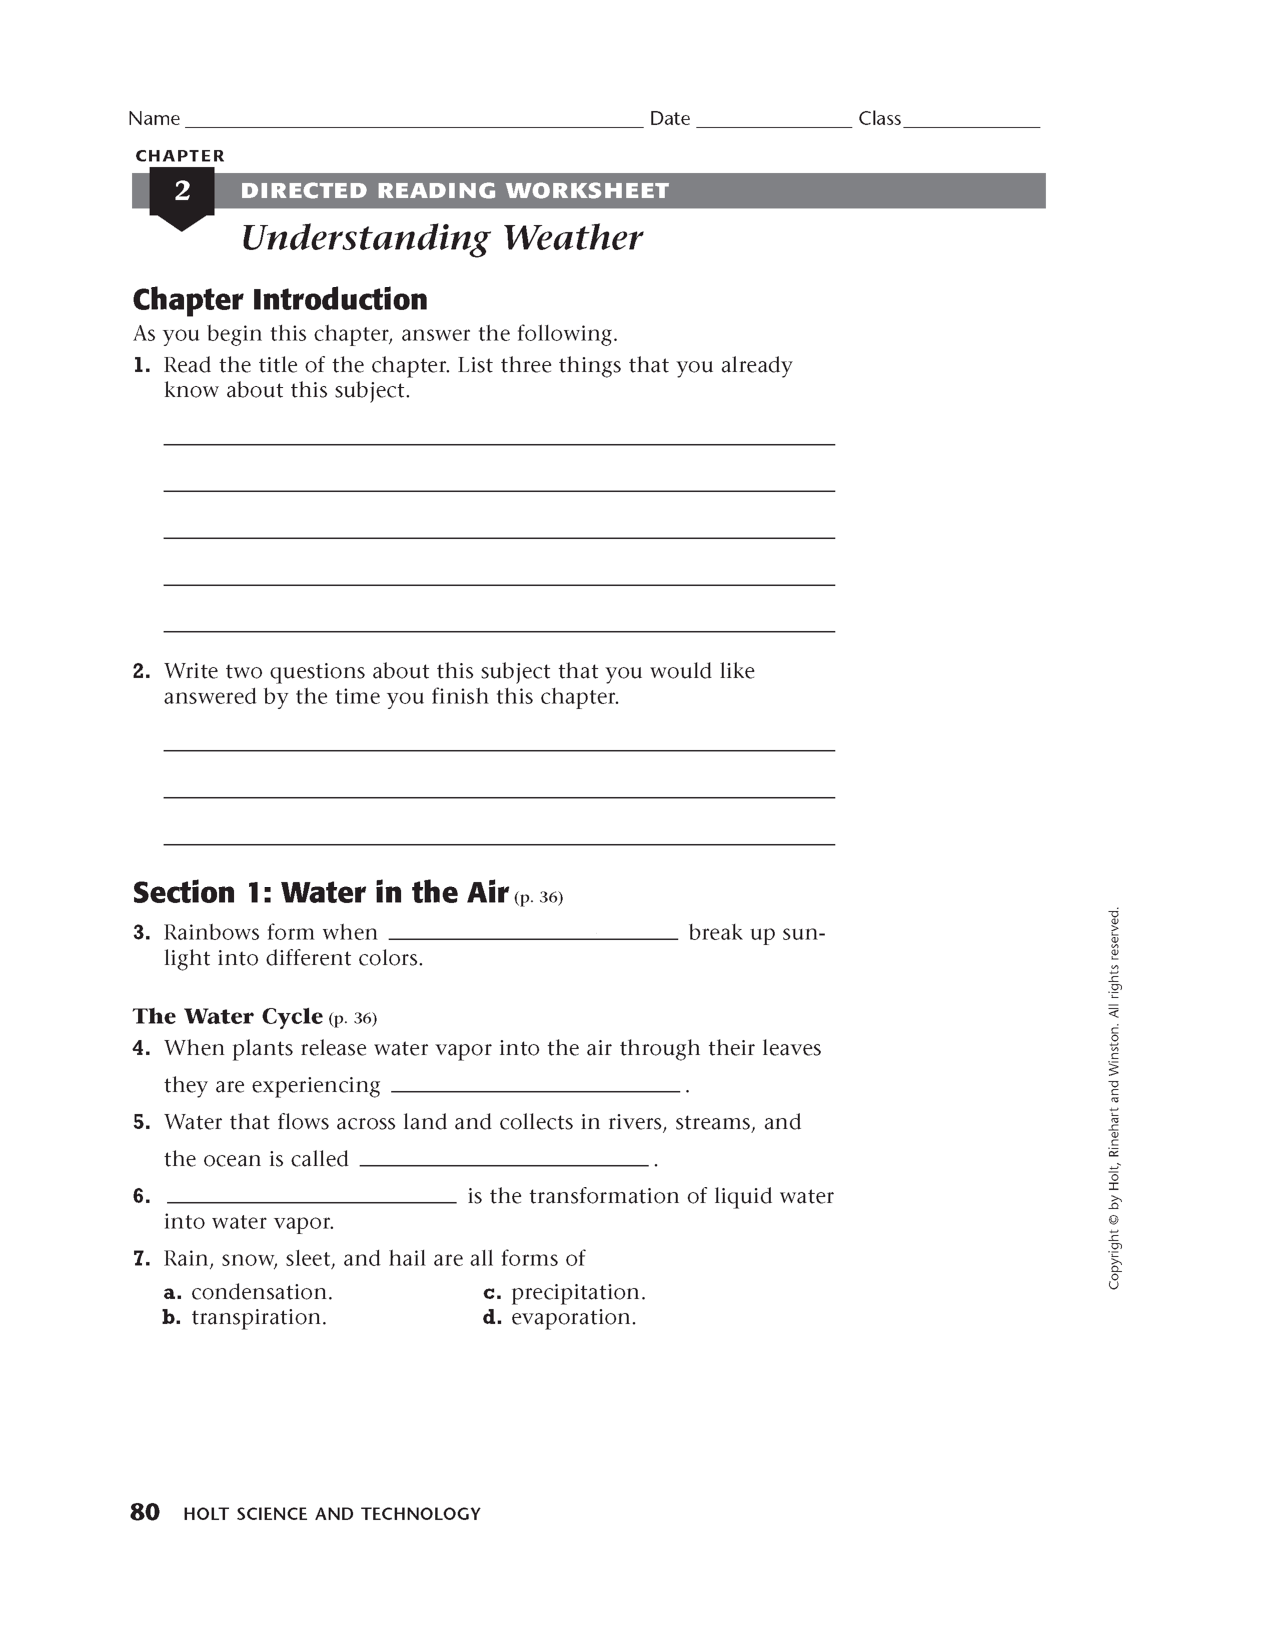 17 Best Images Of Holt Rinehart Winston Science Worksheets